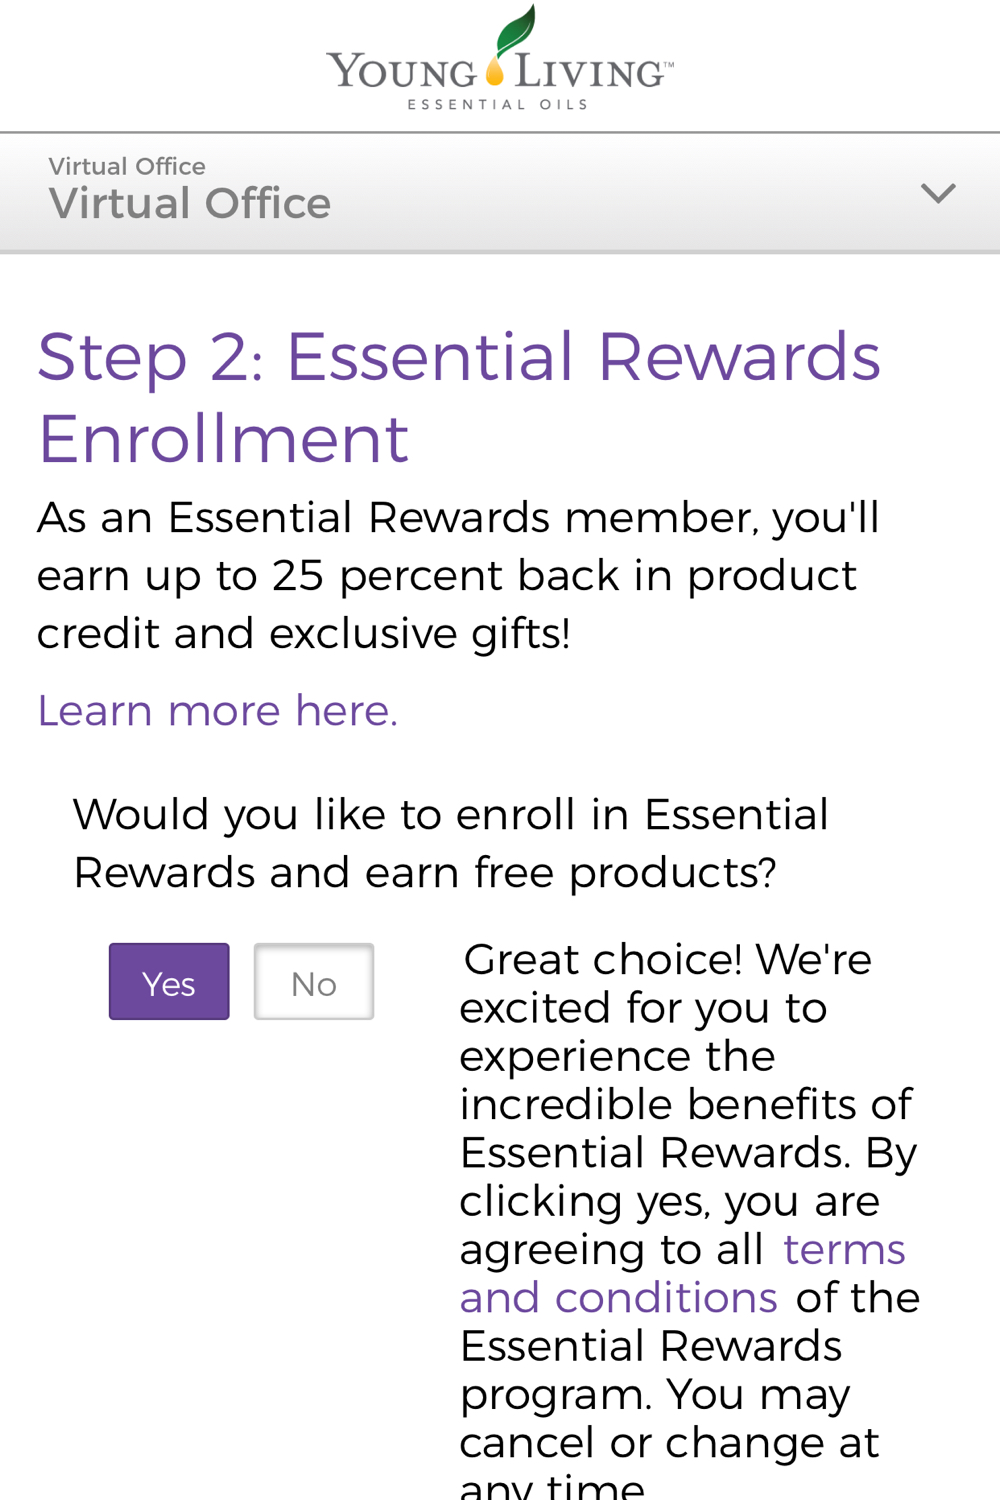 yl-essential-rewards